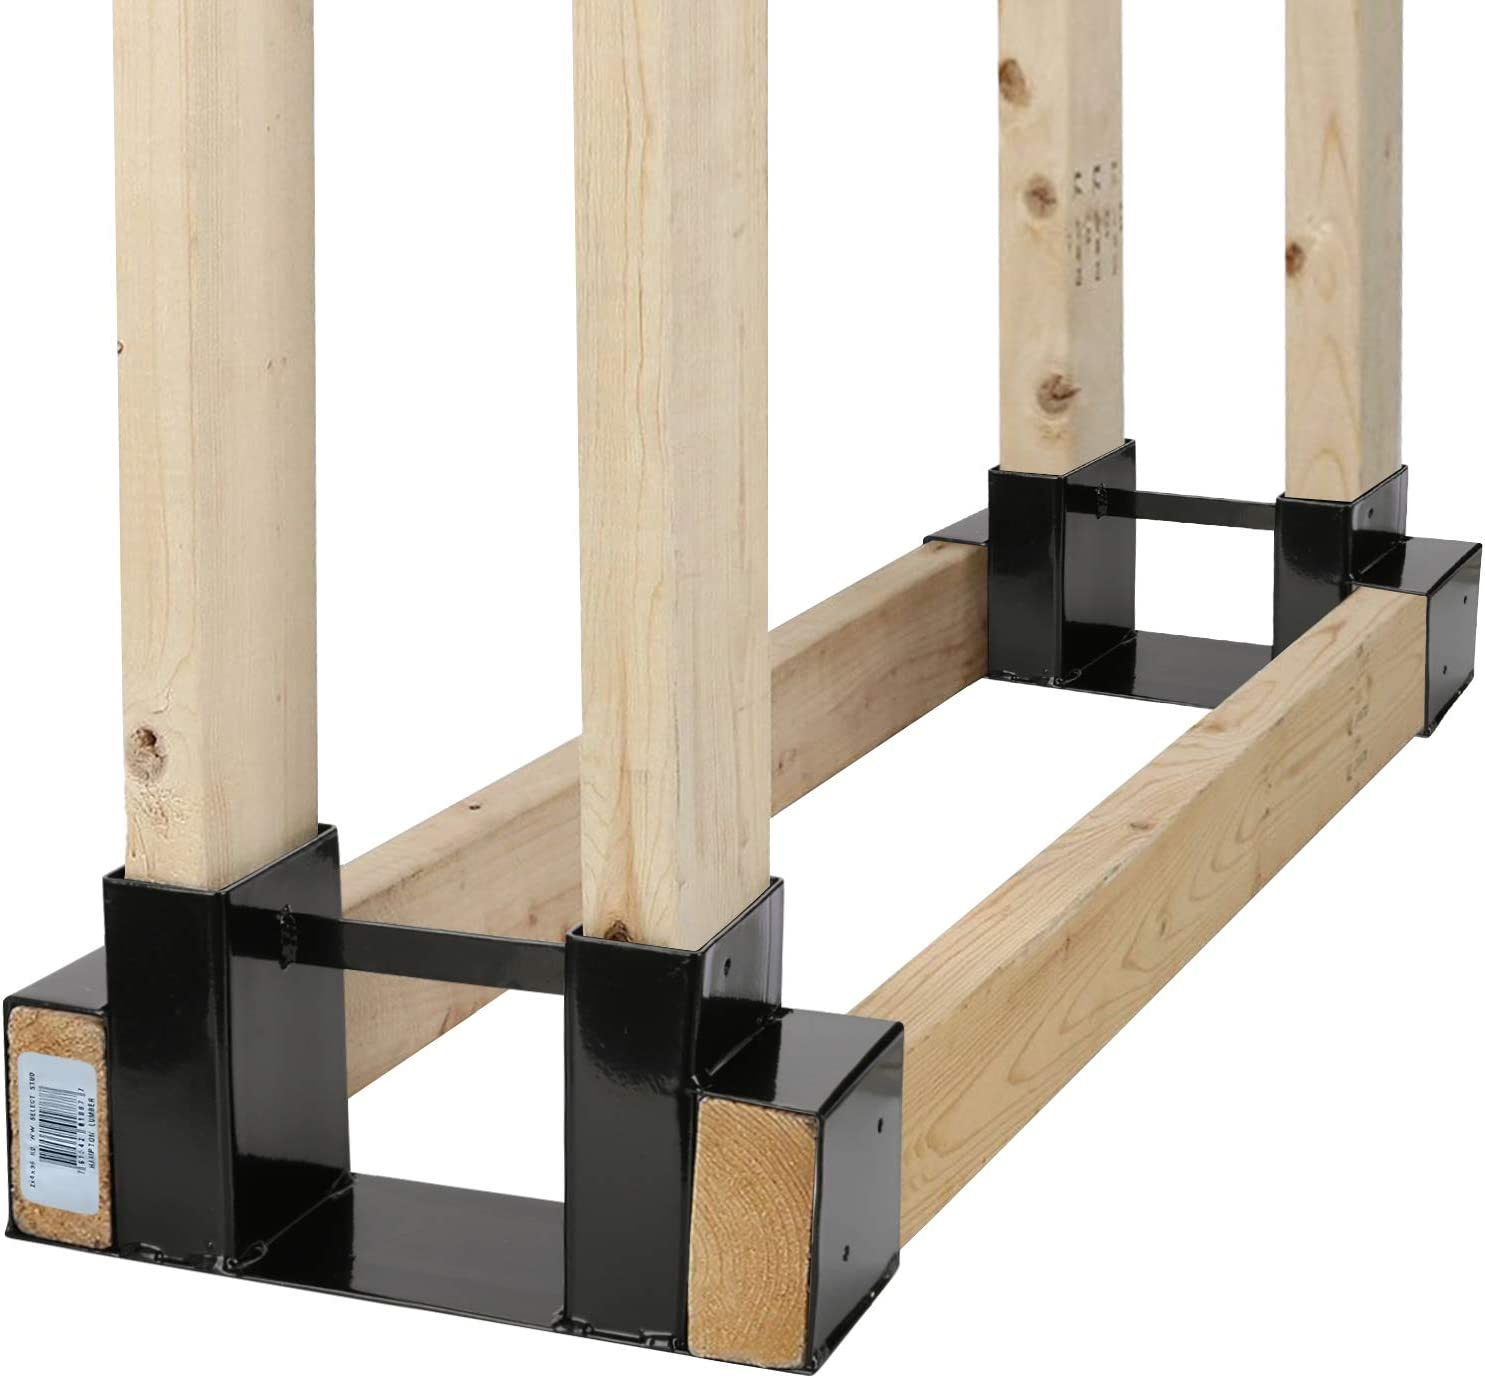 Outdoor Firewood Log Rack Bracket Wood Storage Kit online Cheap mail order specialty store shop Ho Fireplace